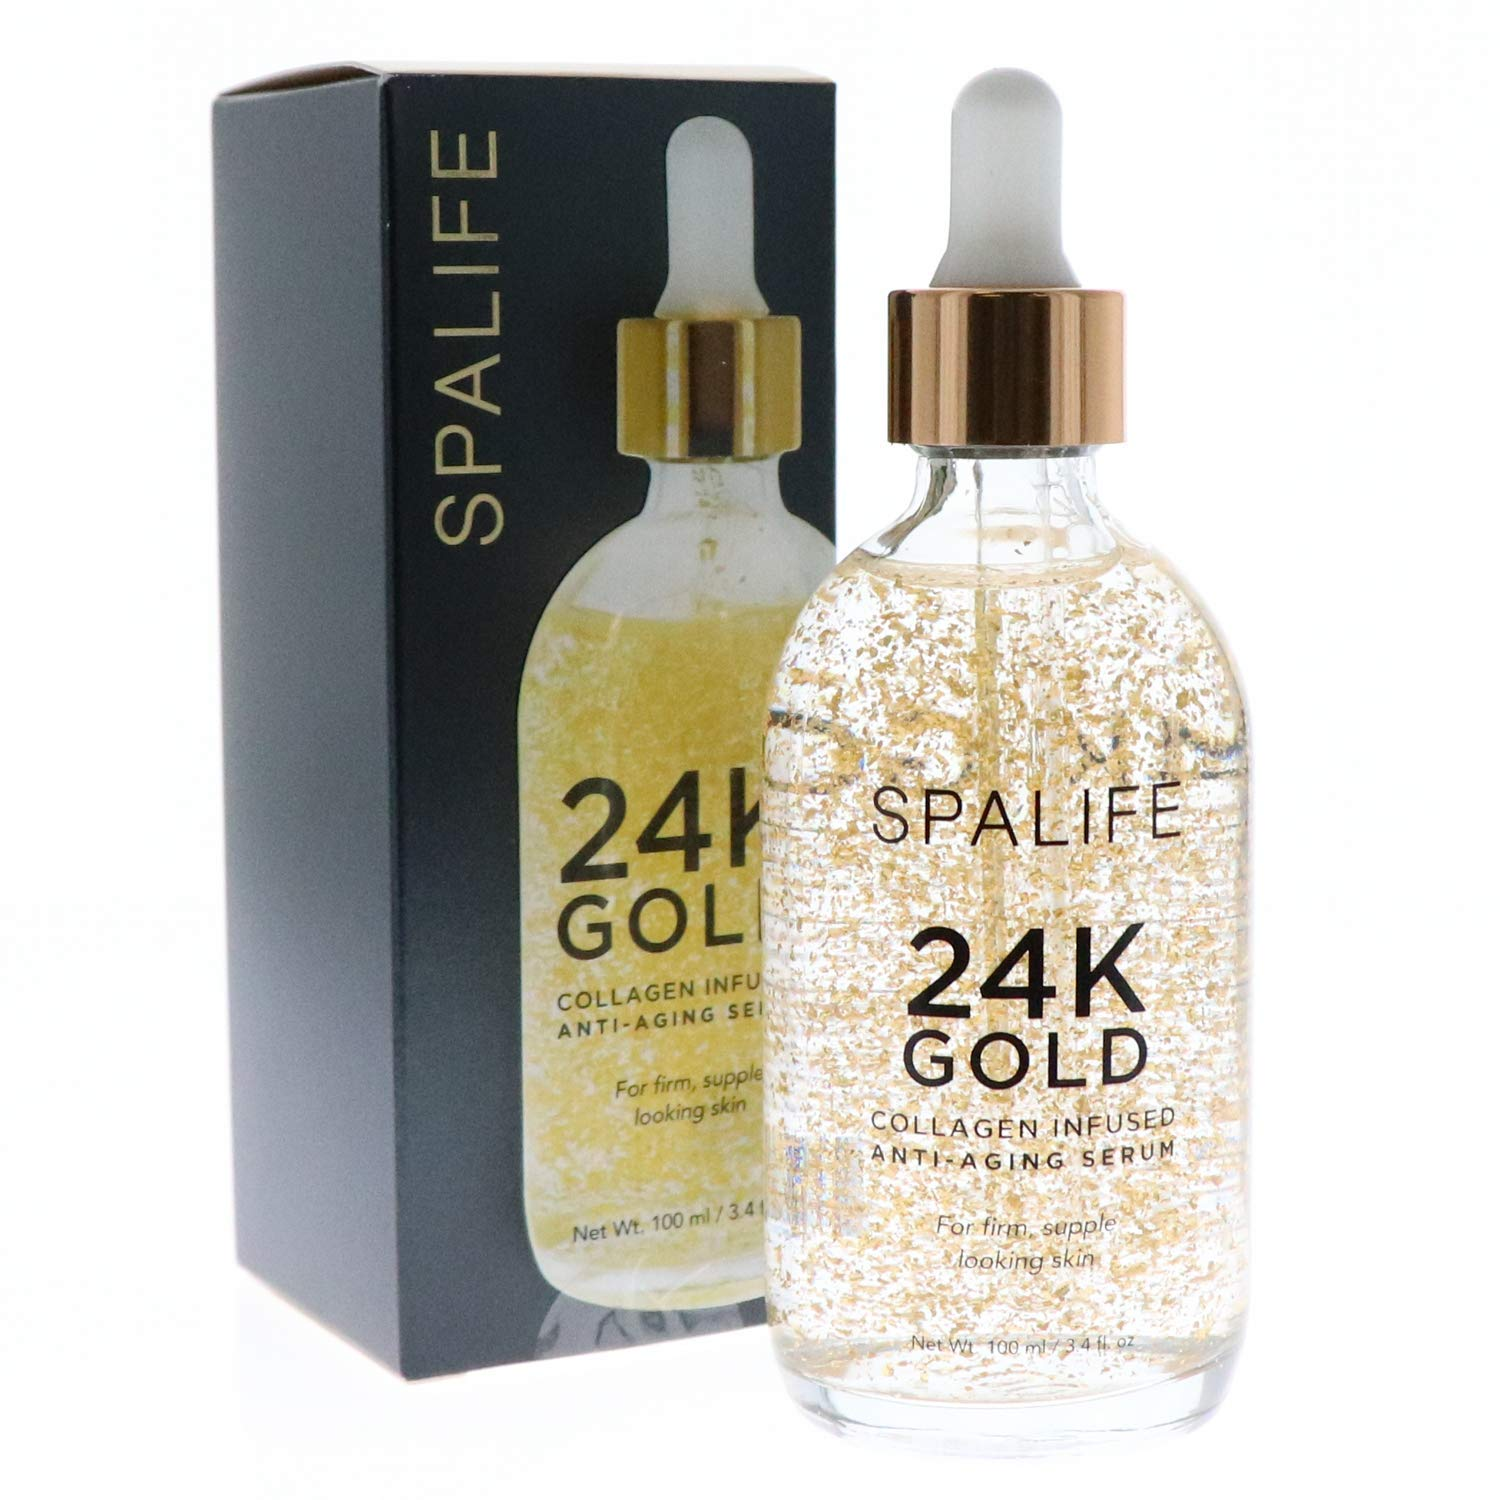 24k gold serum price in Pakistan SpaLife…